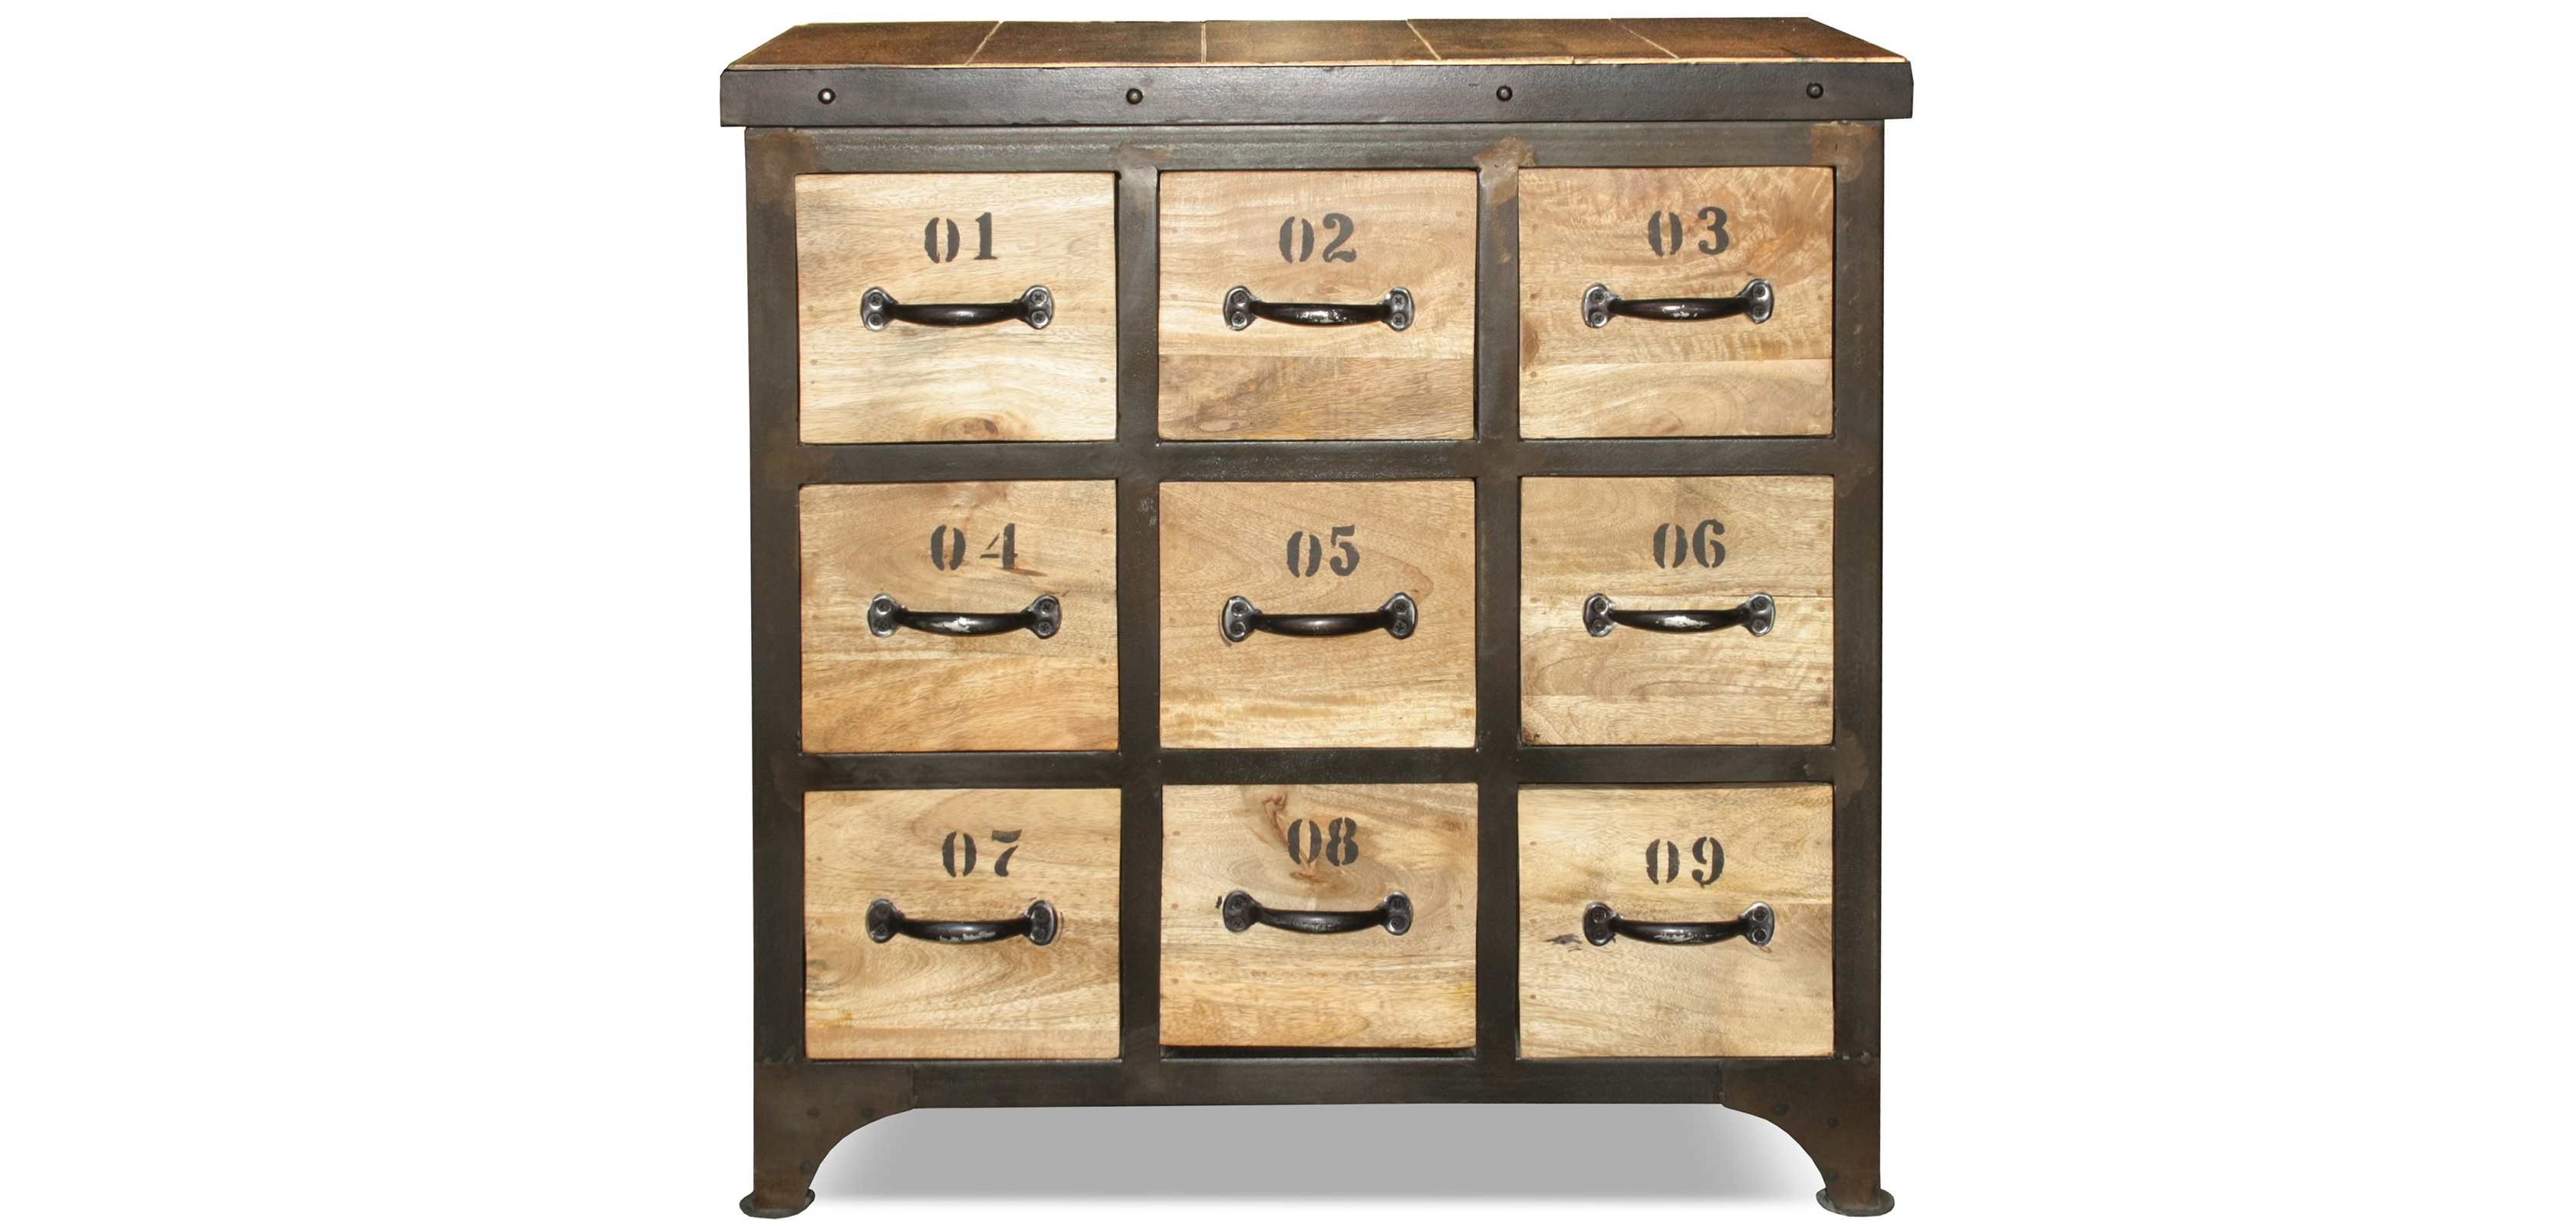 commode en bois vintage industriel. Black Bedroom Furniture Sets. Home Design Ideas